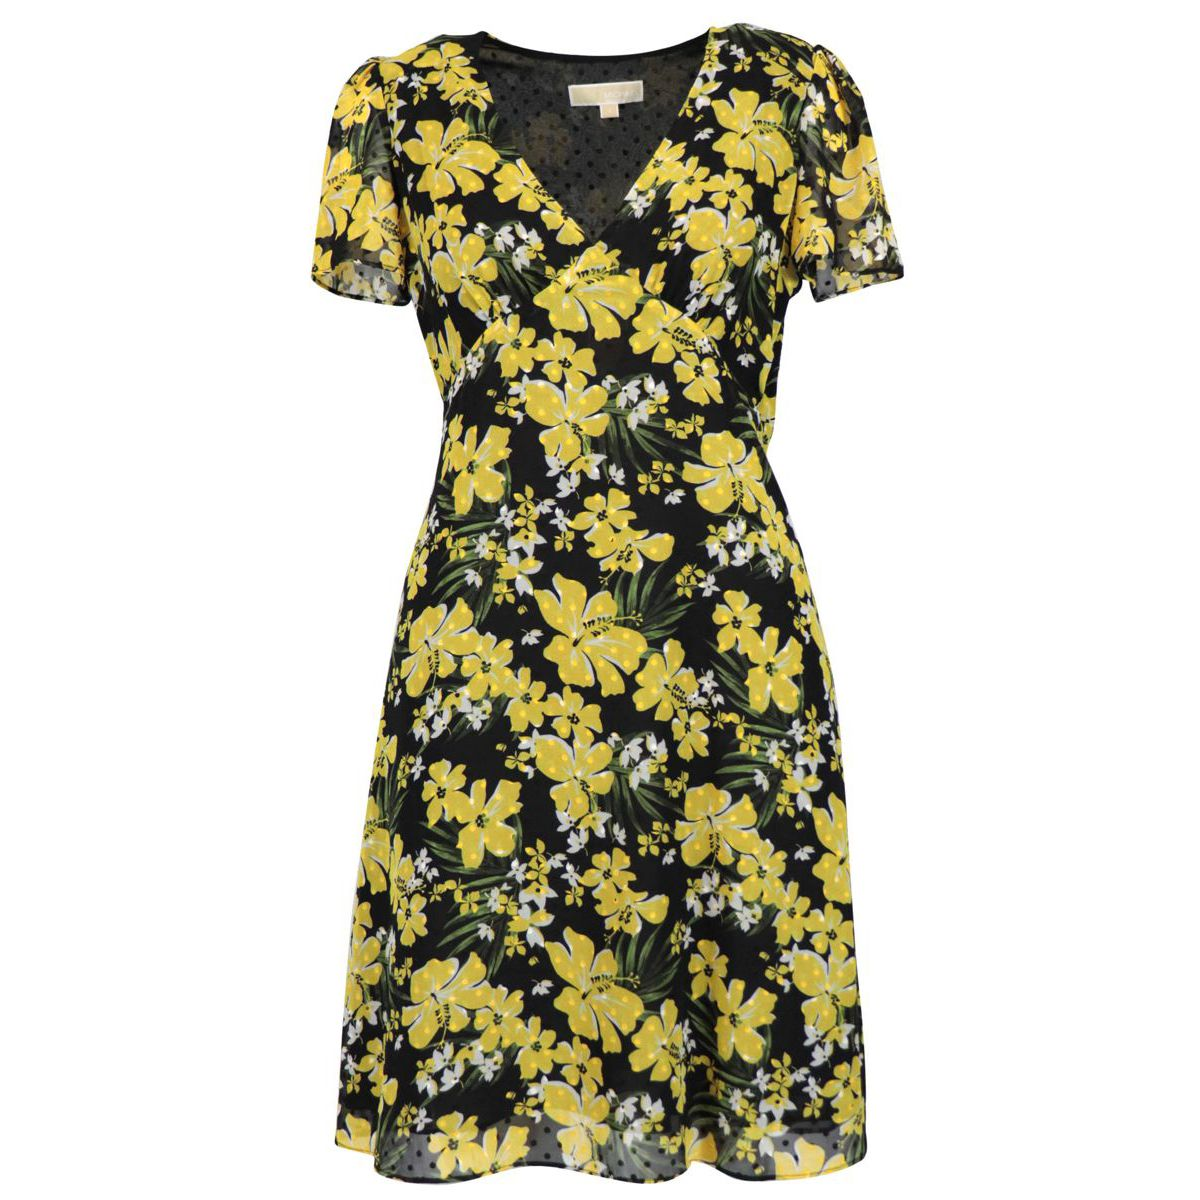 Short-sleeved viscose dress with flower print Yellow black Michael Kors